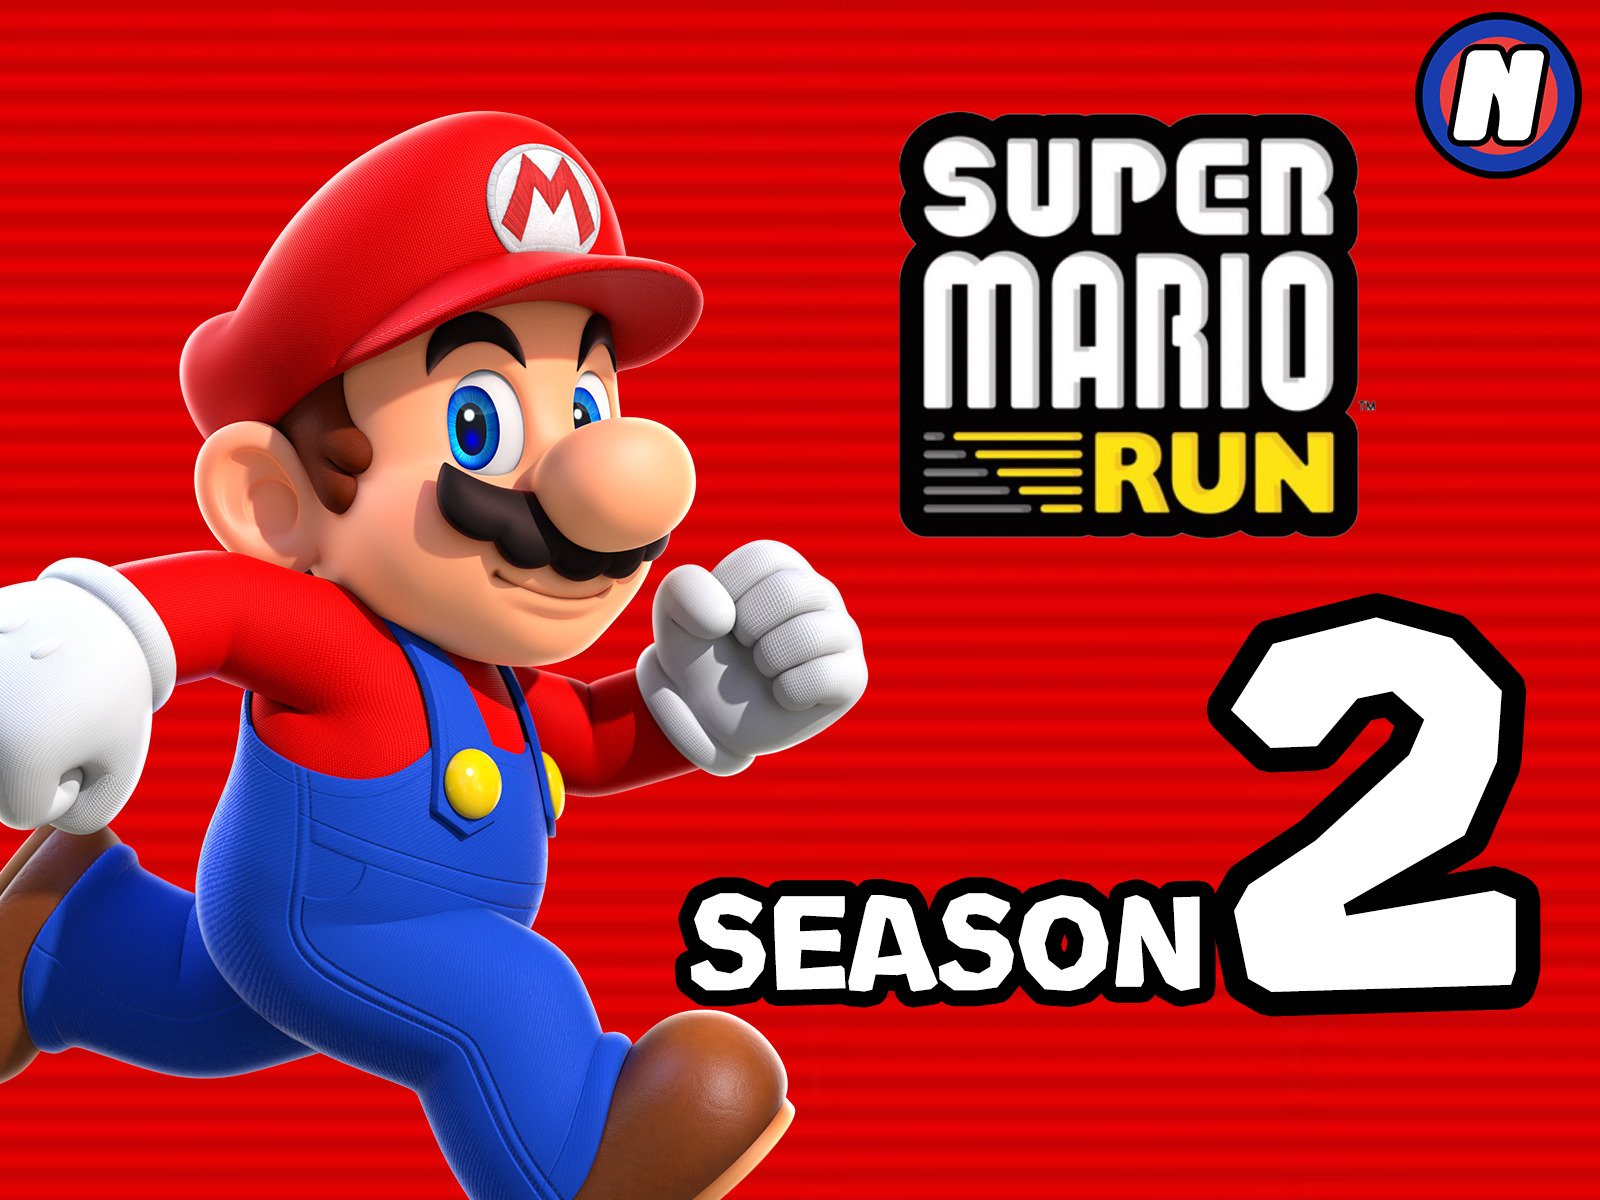 Clip: Super Mario Run Gameplay - Season 2